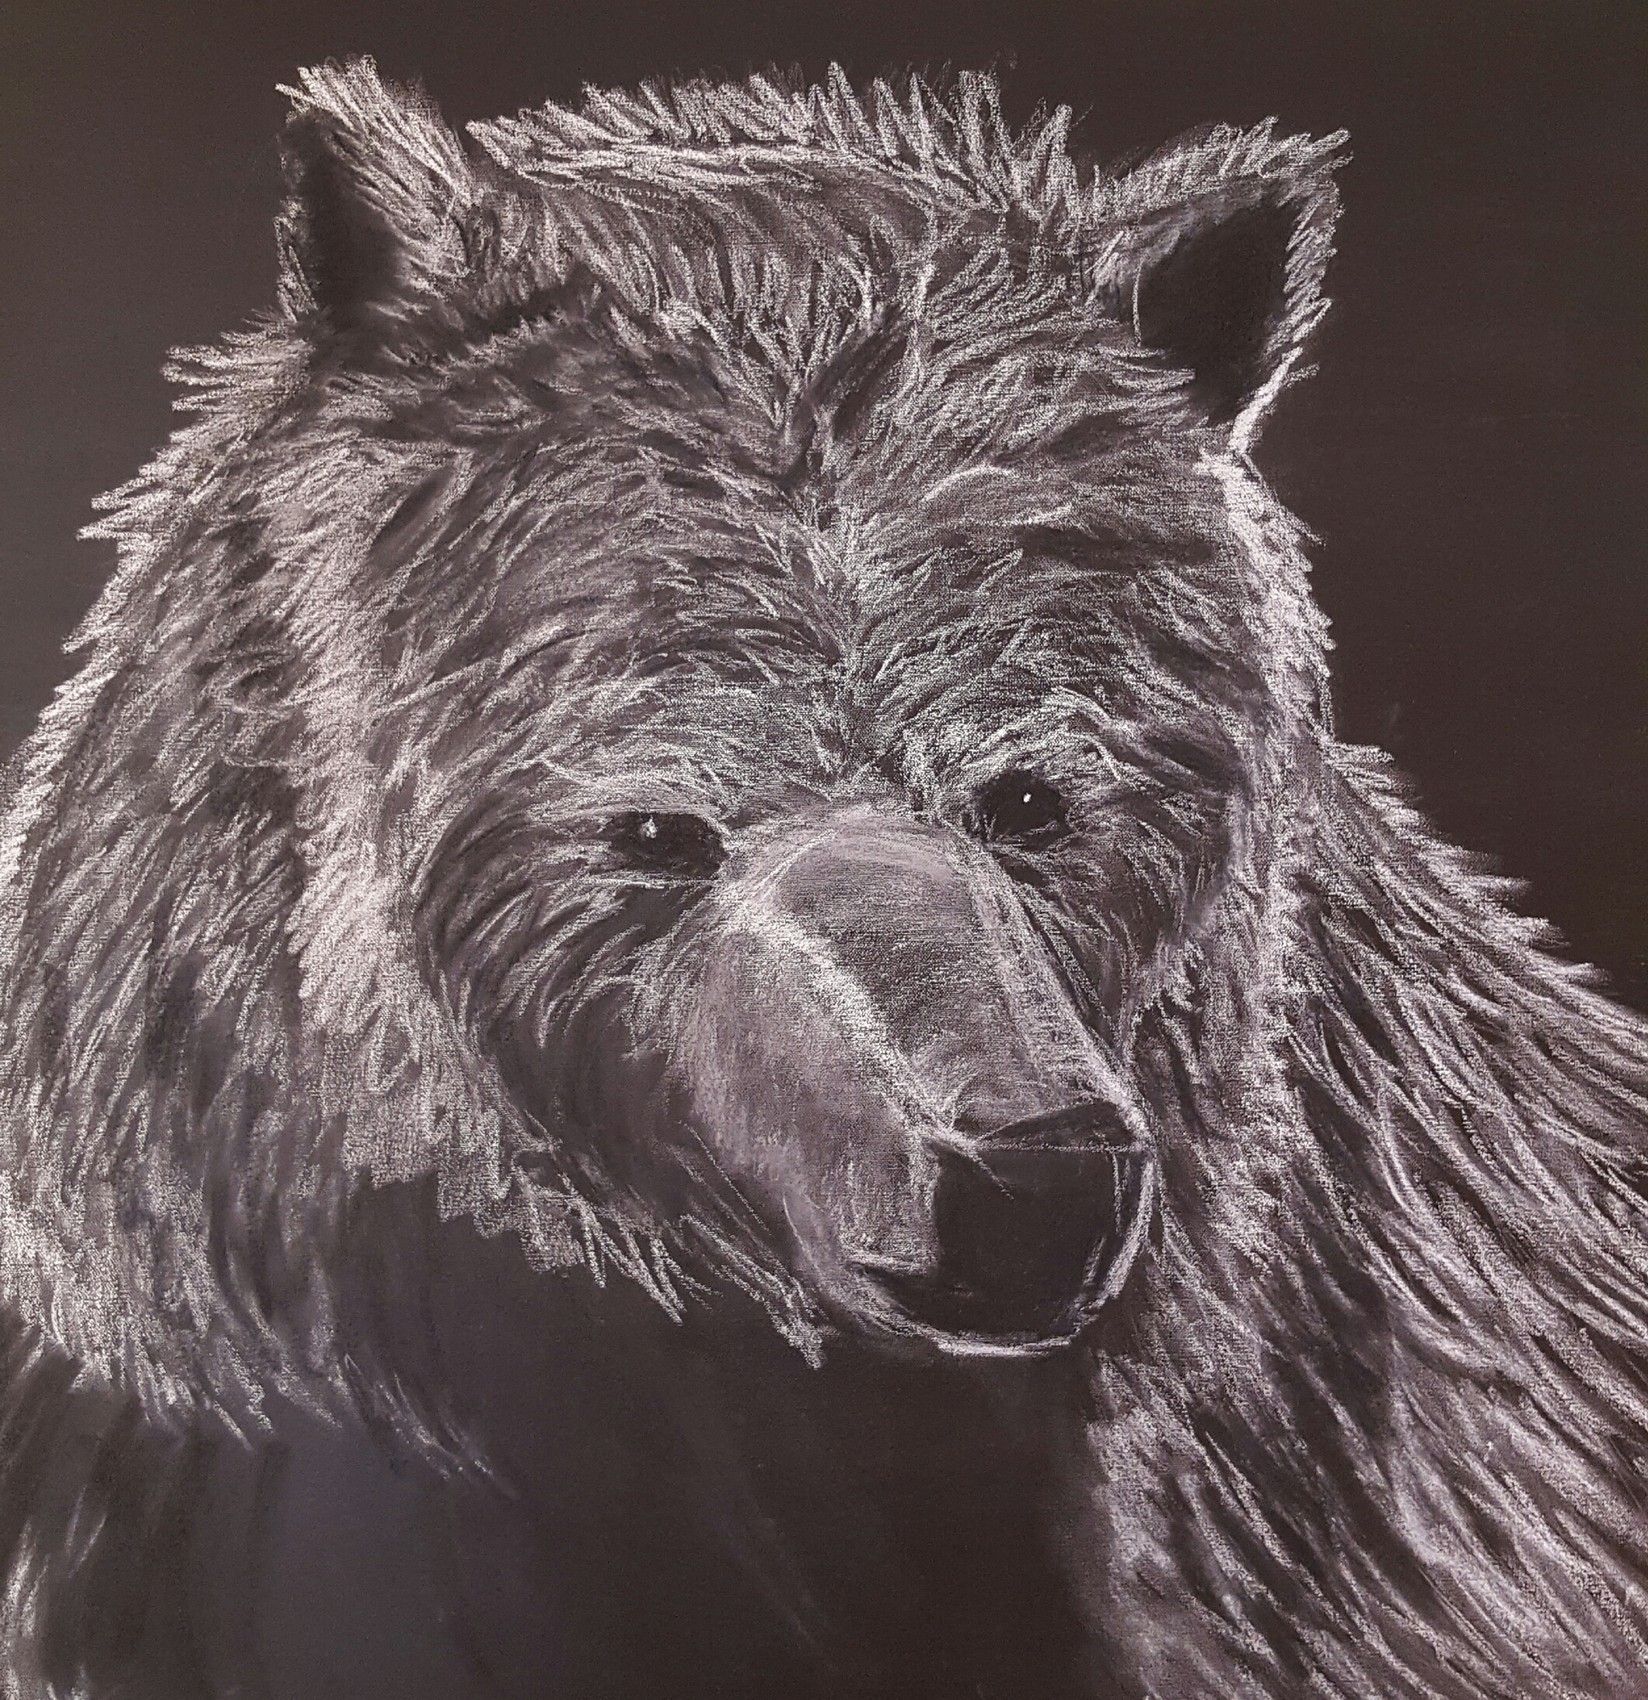 L'ours